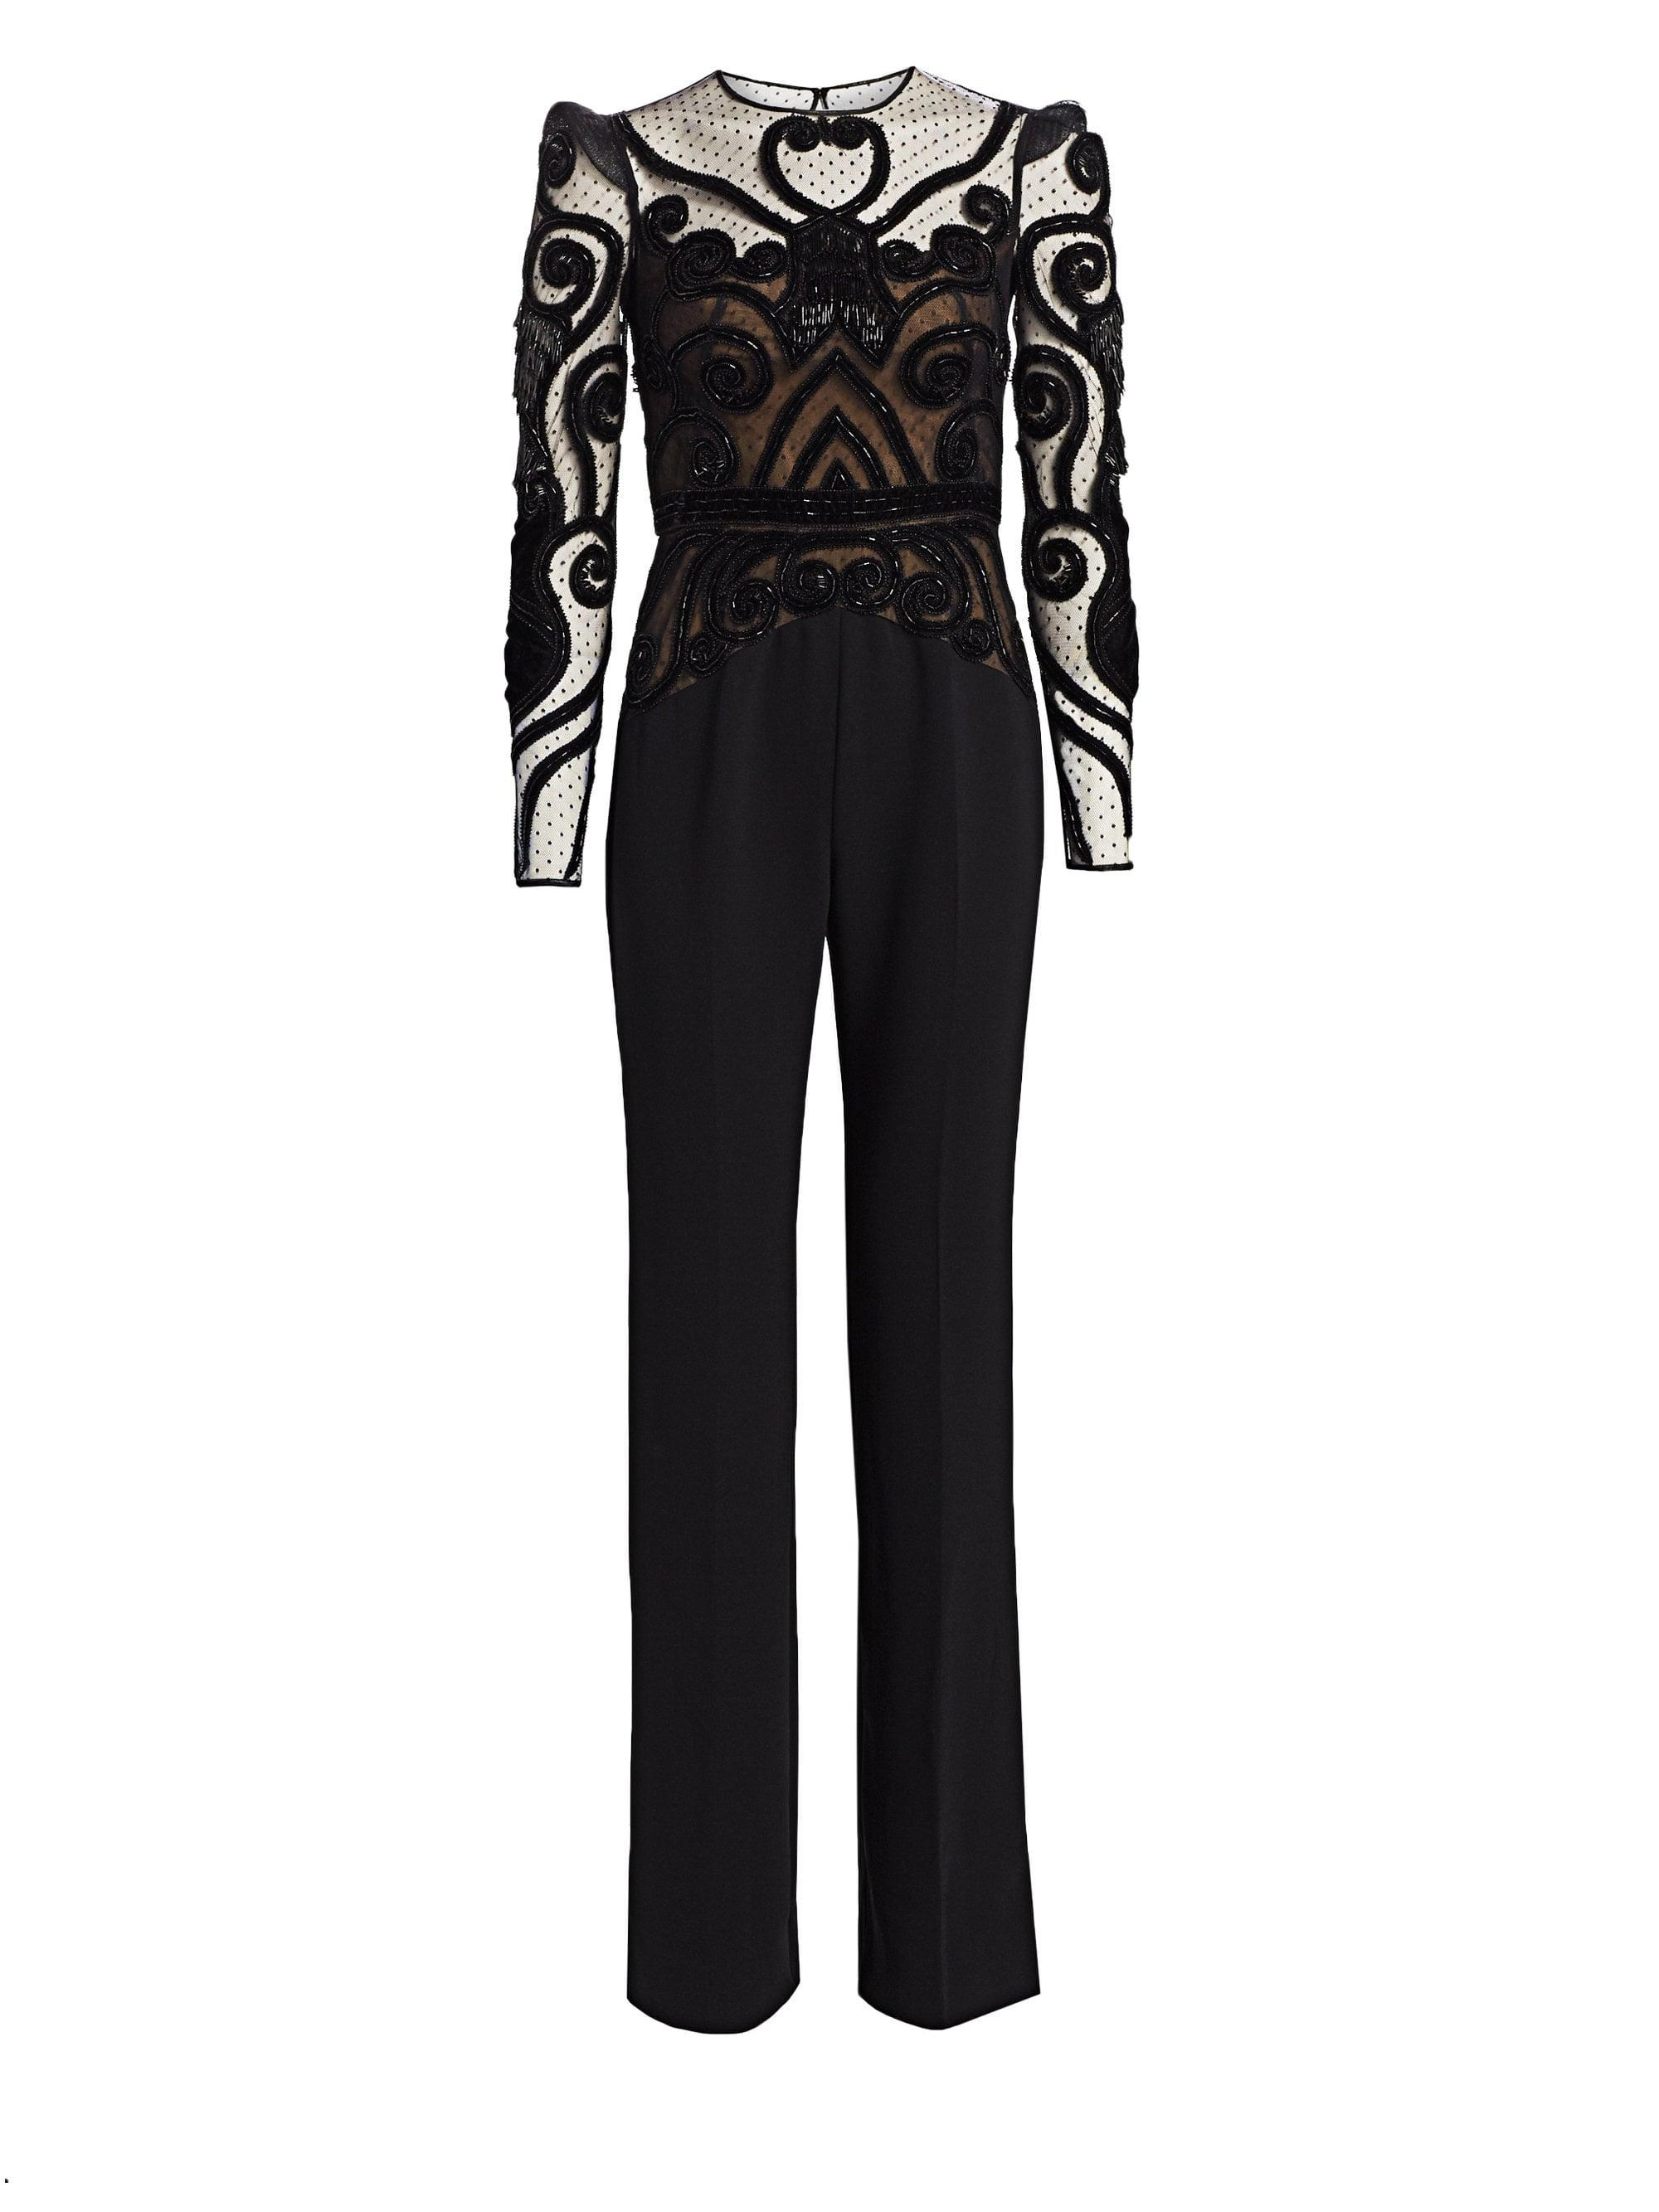 9fa984ca604 Zuhair Murad. Women s Bead Embroidery Jumpsuit - Black - Size 34 (0).  £4